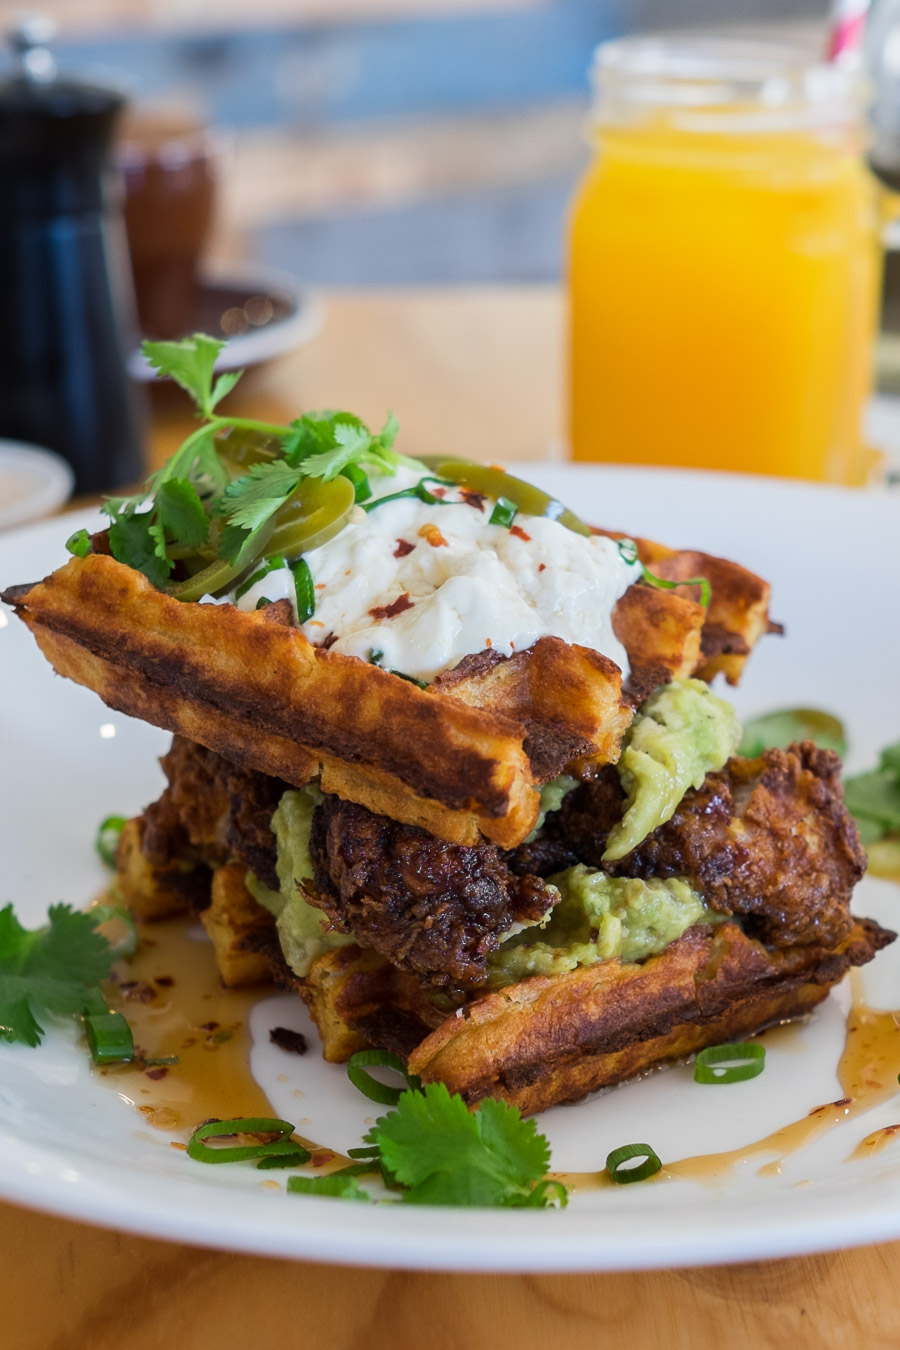 Soul sandwich (AU$22) - polenta waffles, buttermilk fried chicken, smashed avocado, smoked sour cream and jalapenos.